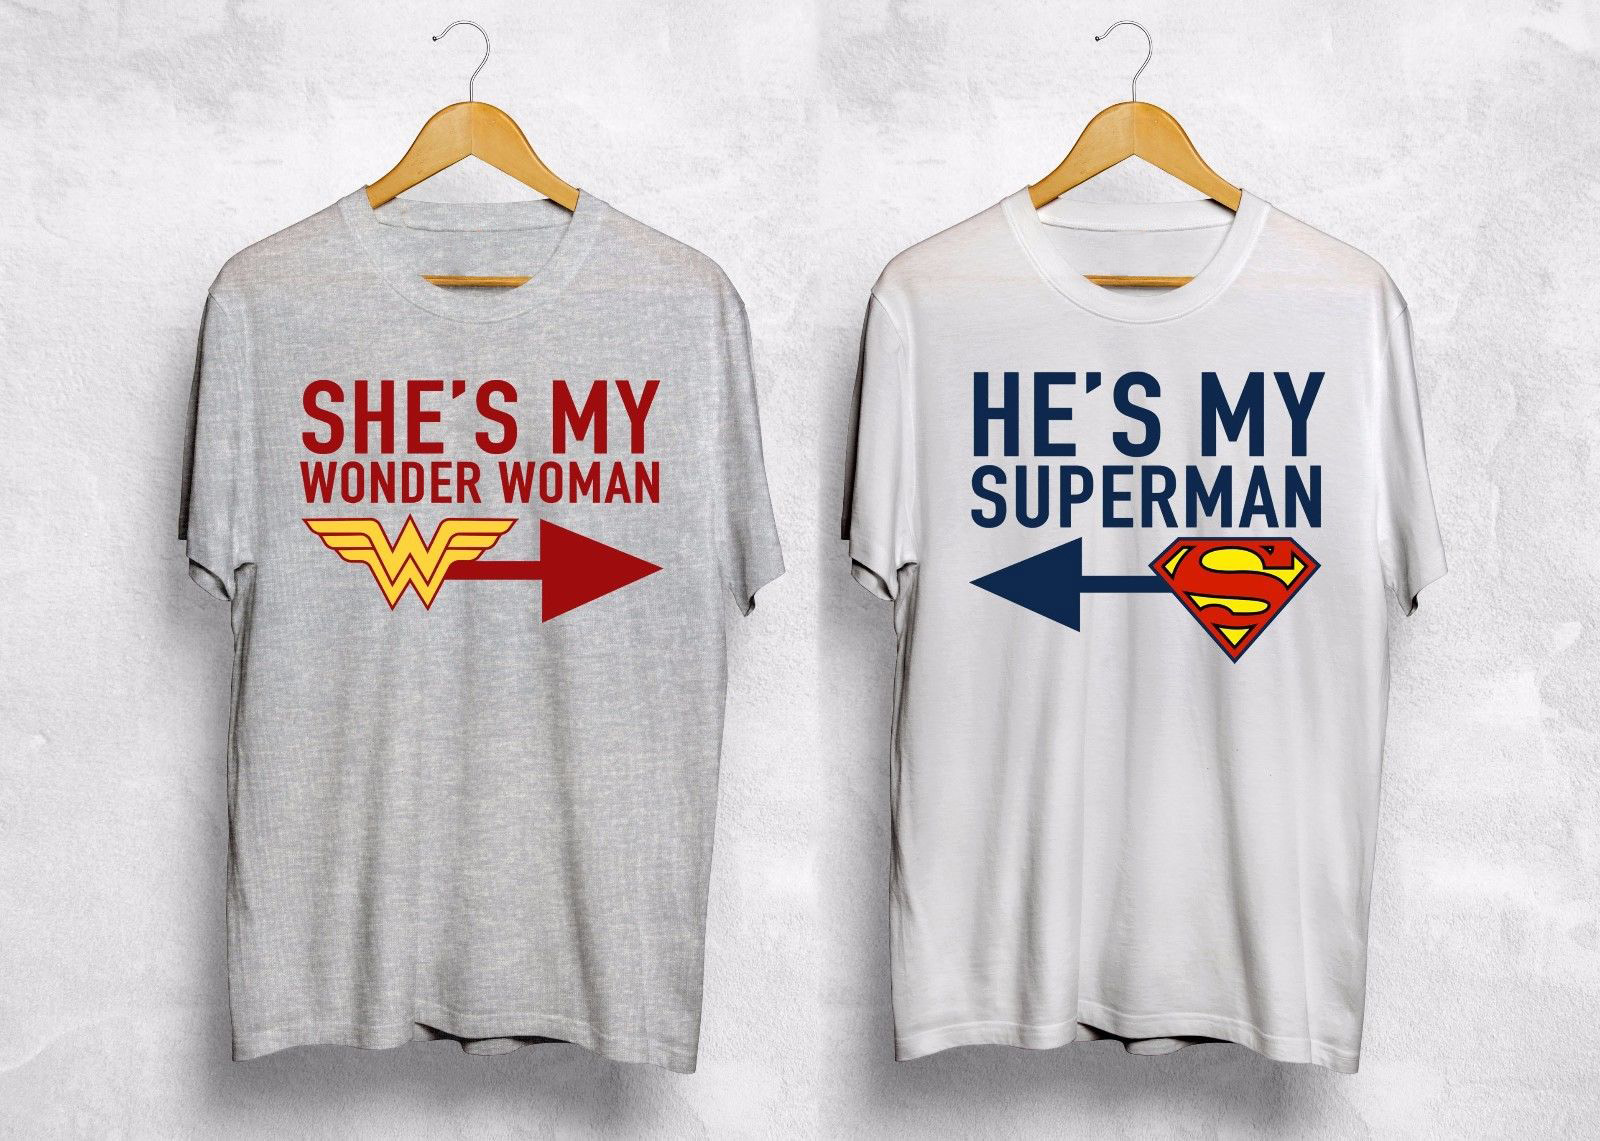 He's My Superman Shes My Wonder Woman   T     Shirt   Couple Valentines Gift Wifey Hubby cotton Short Sleeve   t     shirt   men Casual Top tee